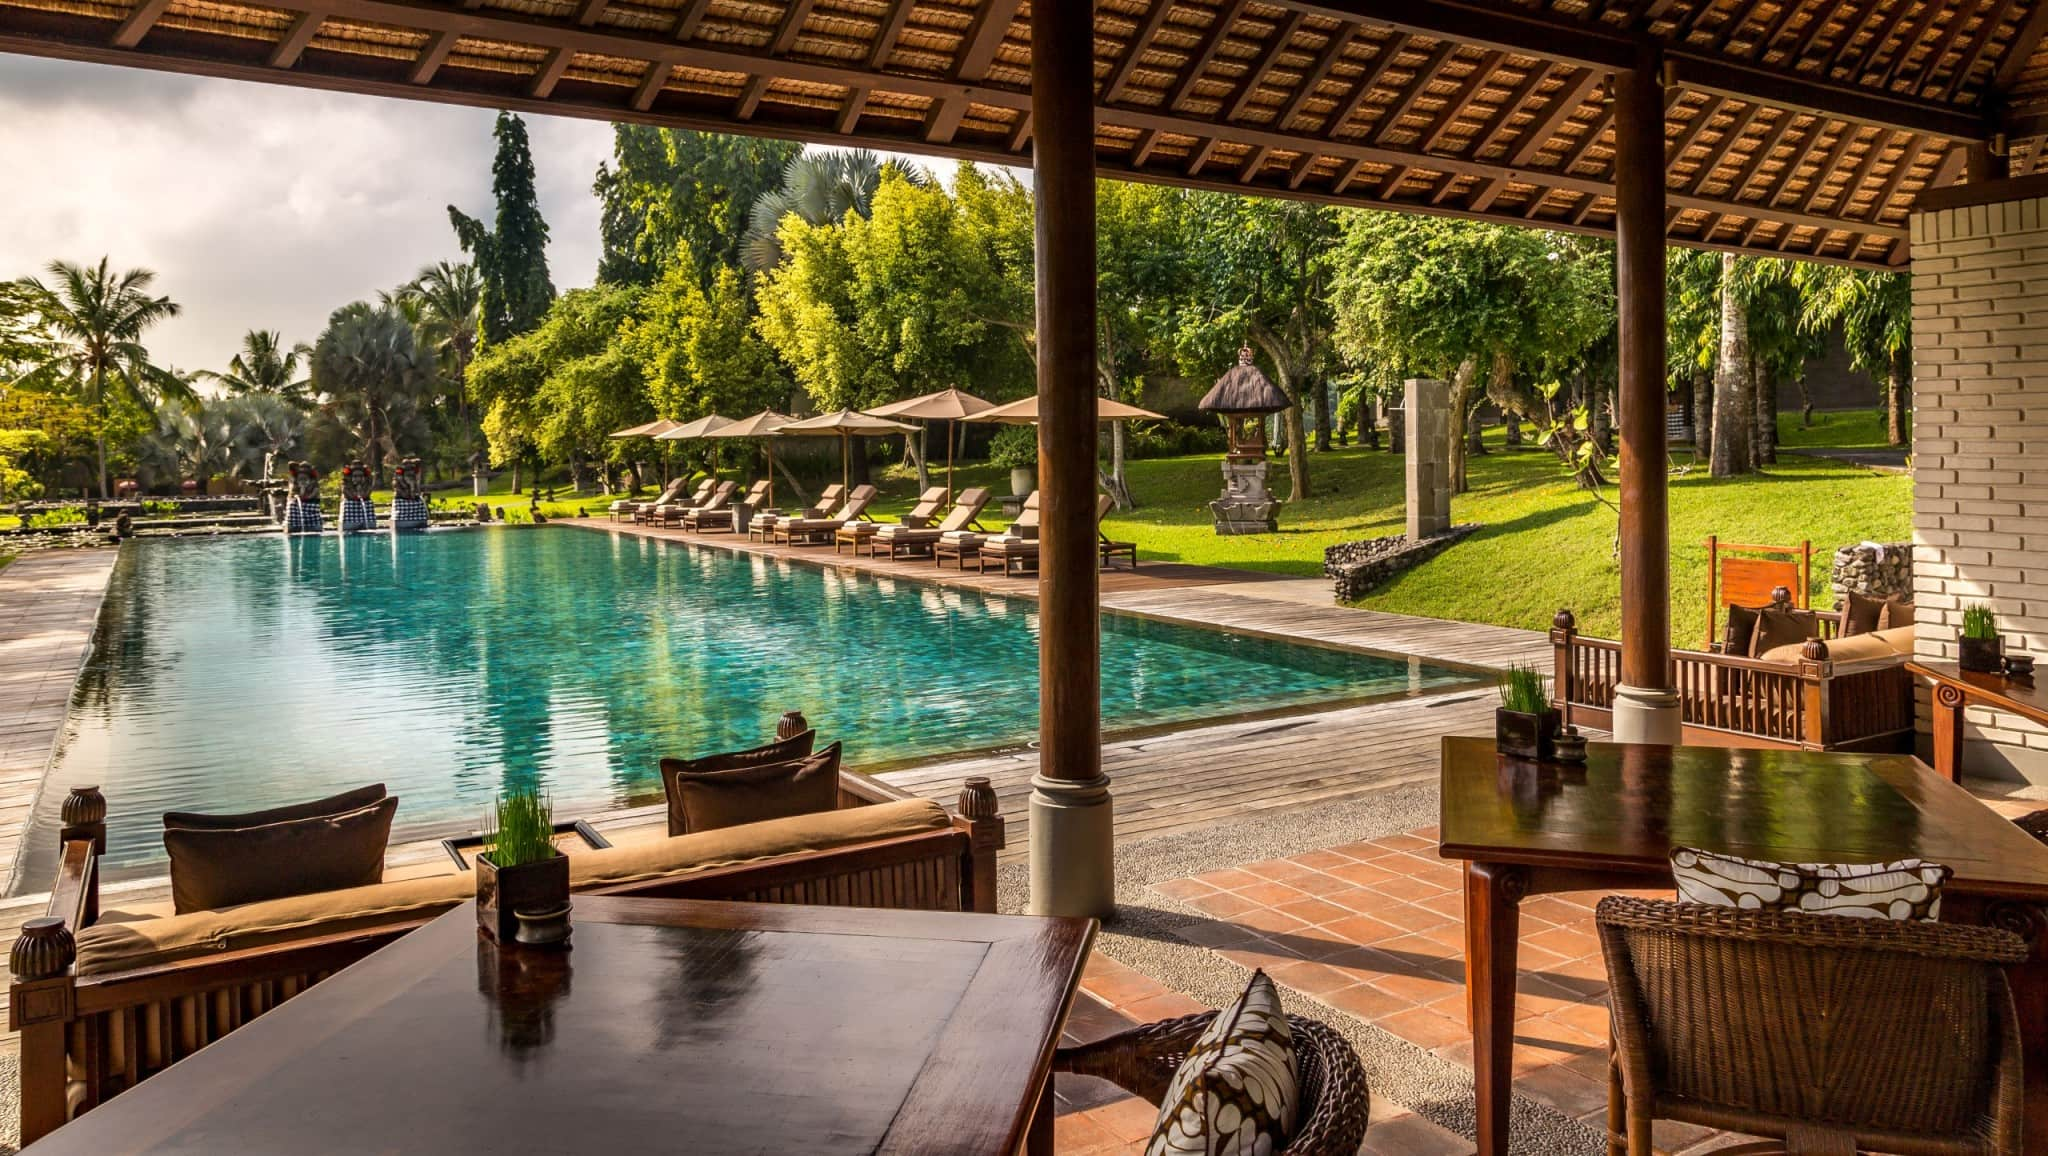 INDONESIA - The Chedi Club offers ultimate private luxury between Ubud's rice fields